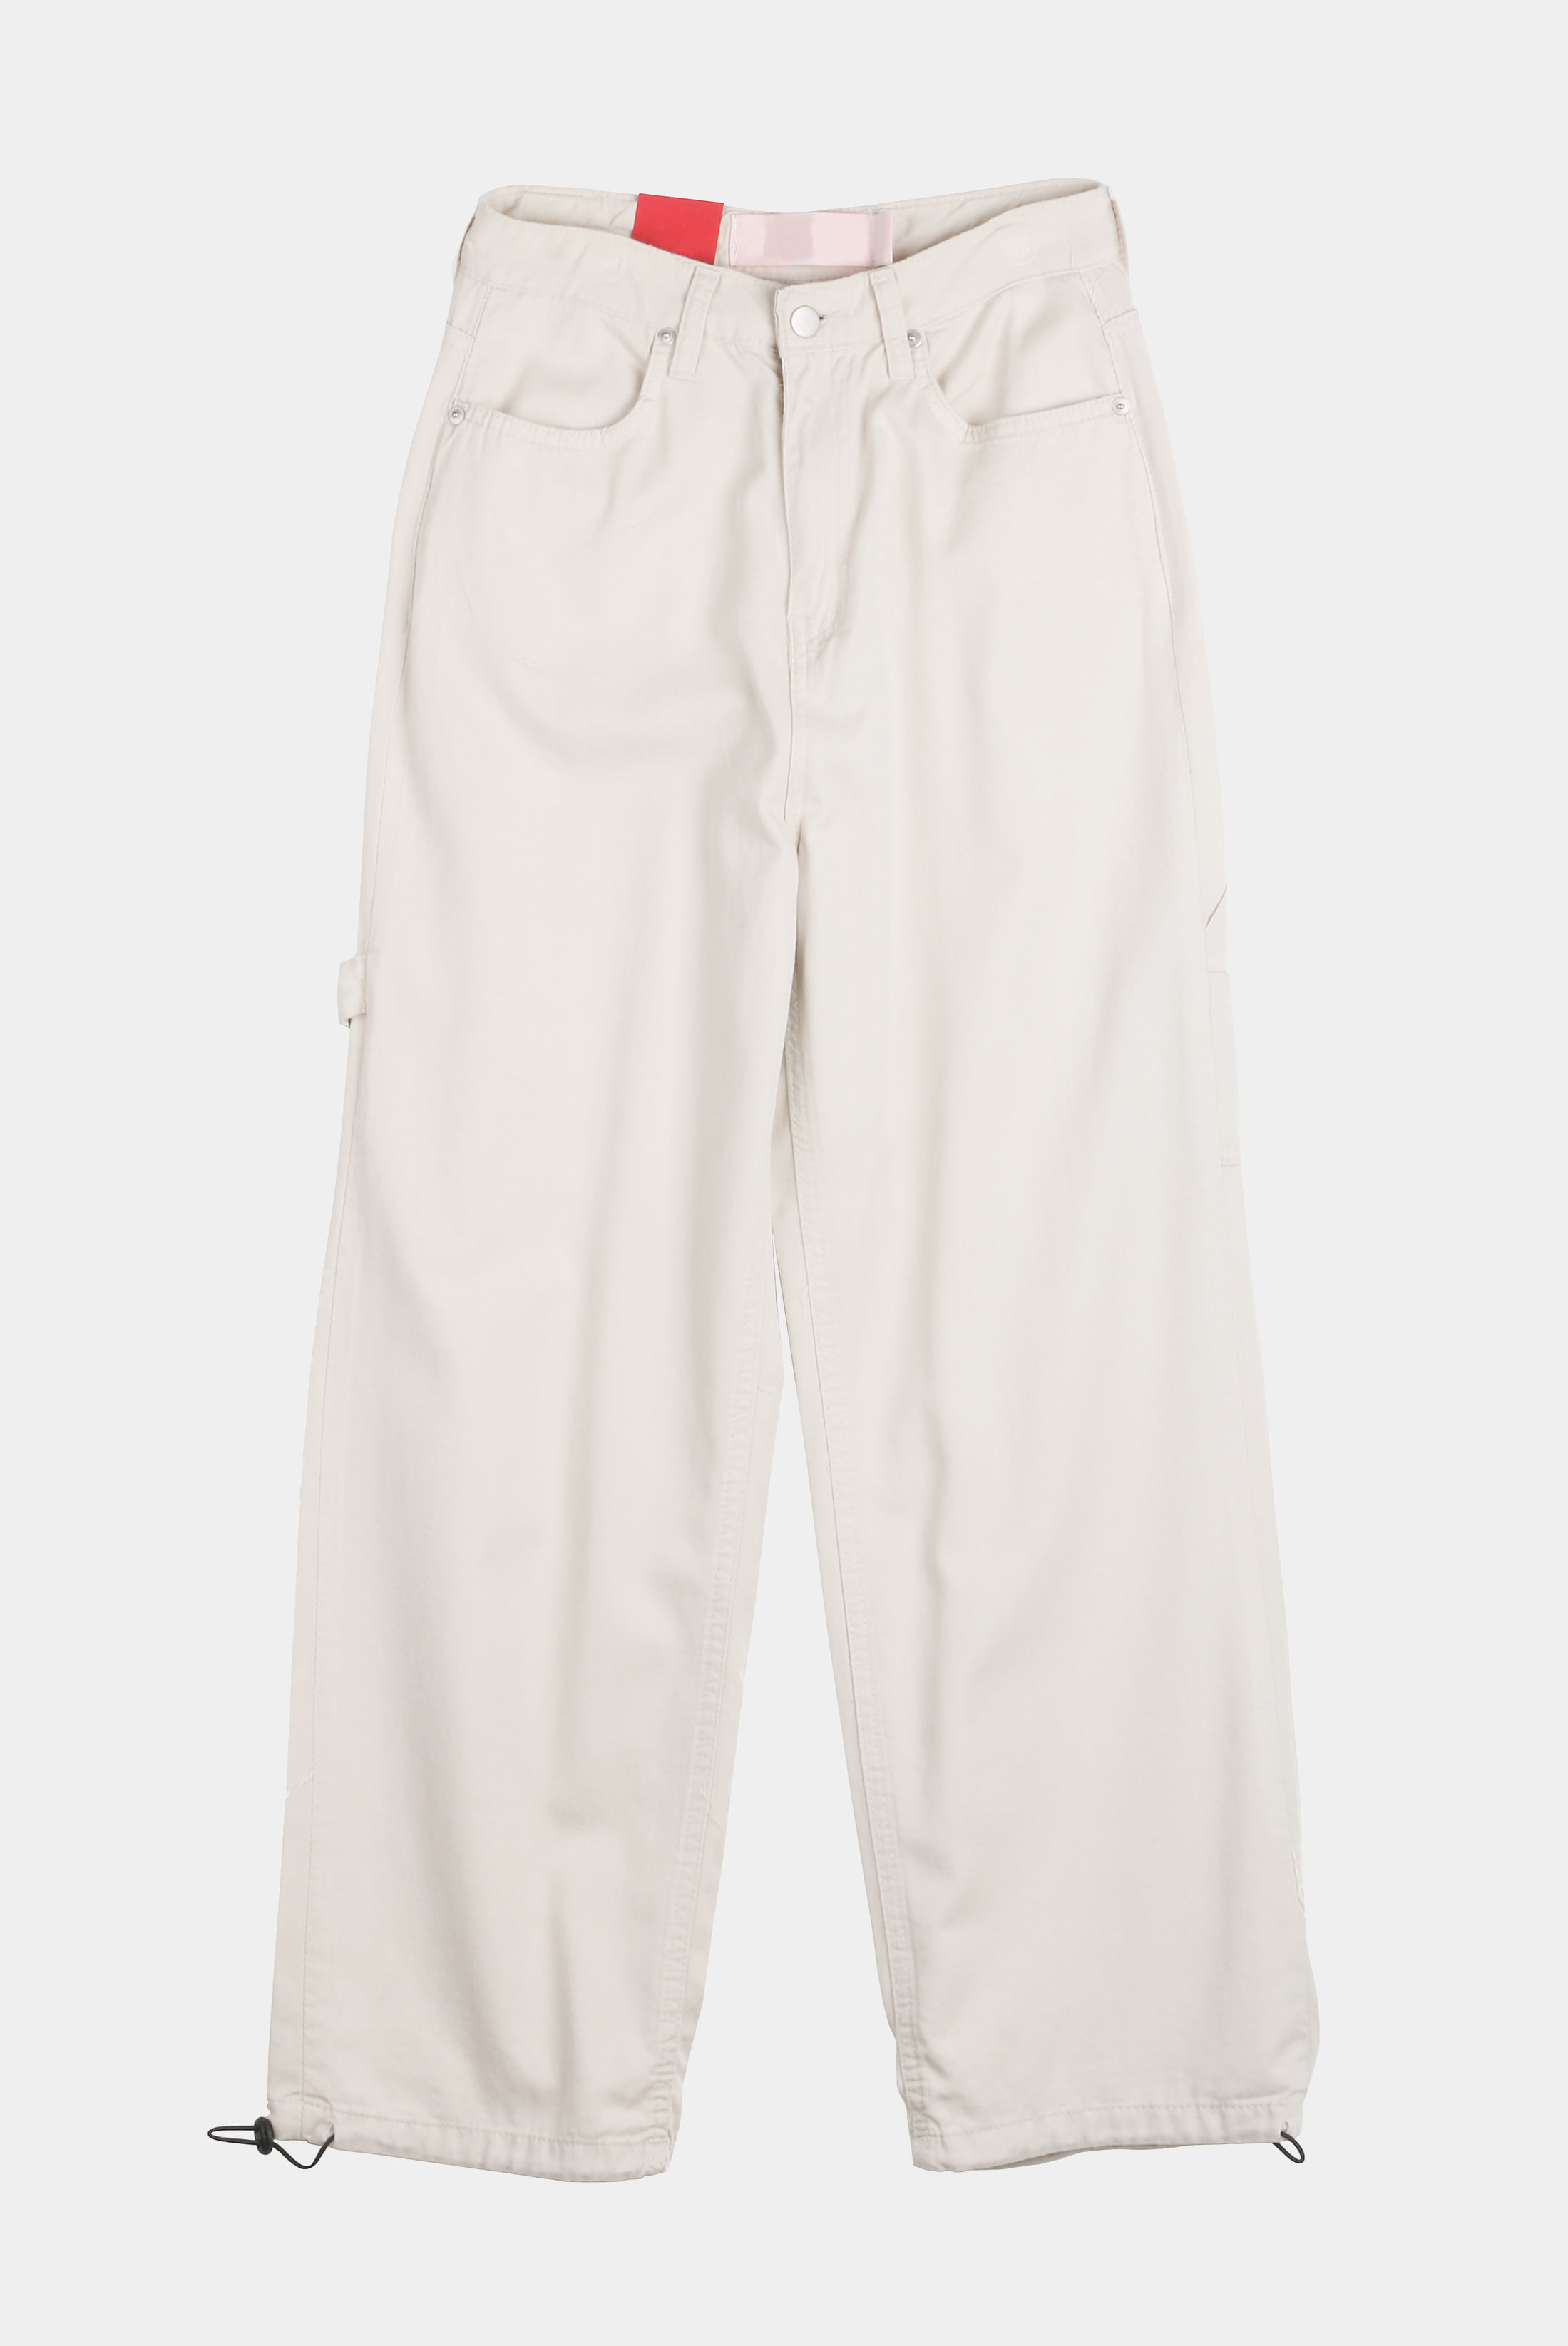 (W) Tencel_Easy Carpenter_Pants